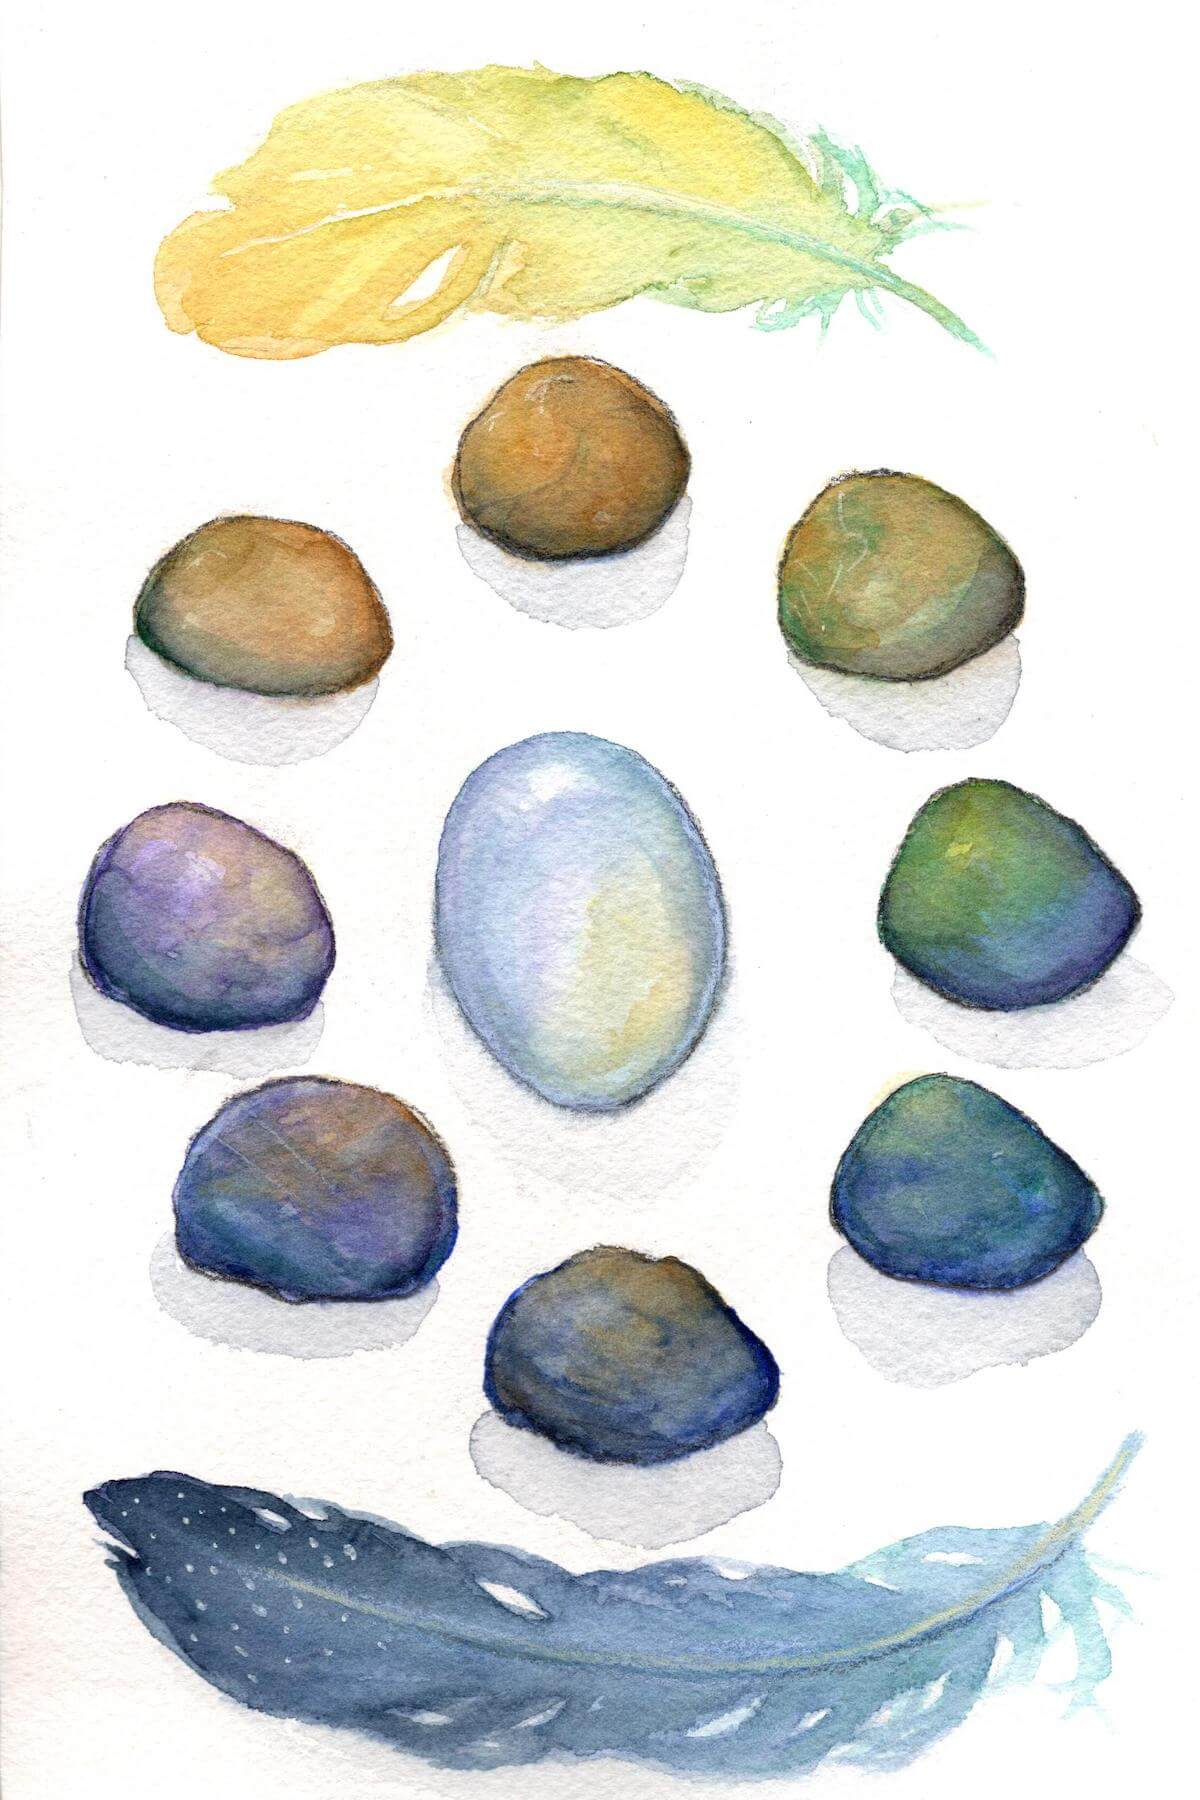 A watercolor painting of a circle of many colored stones with a yellow feather at the top and a blue feather at the bottom. In the center is an opal-like stone.